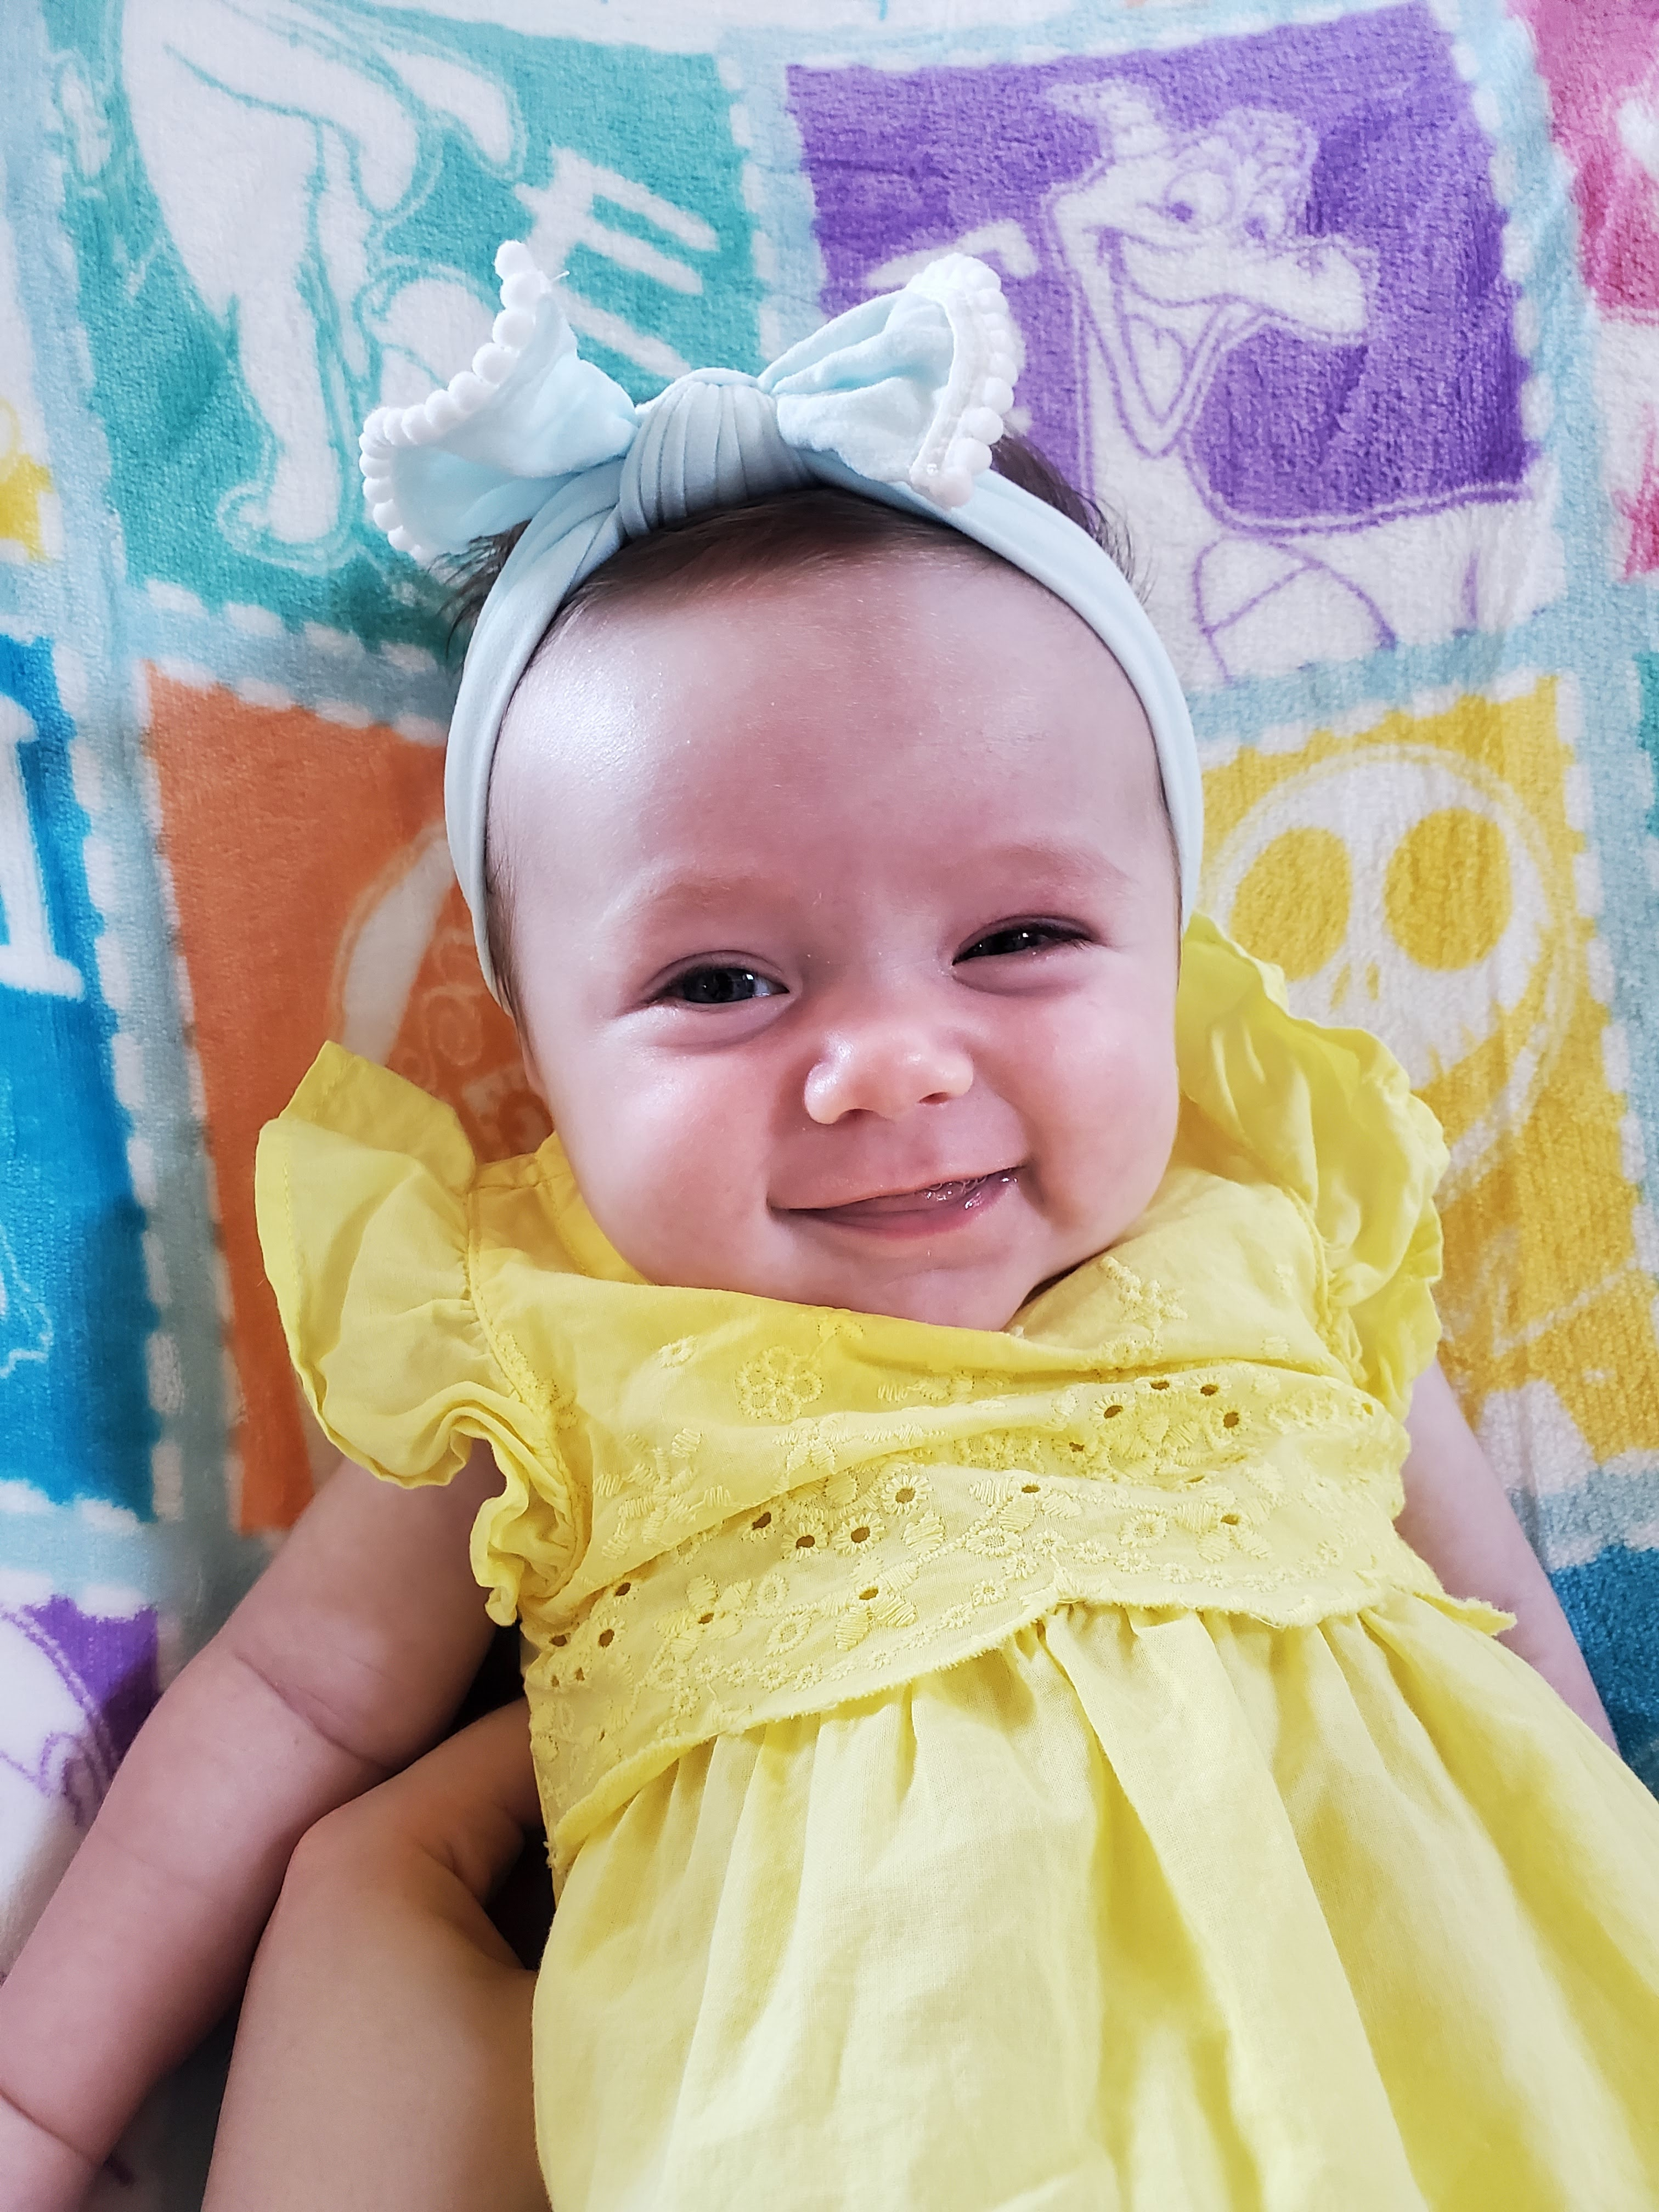 Baby wearing a yellow romper and blue headband